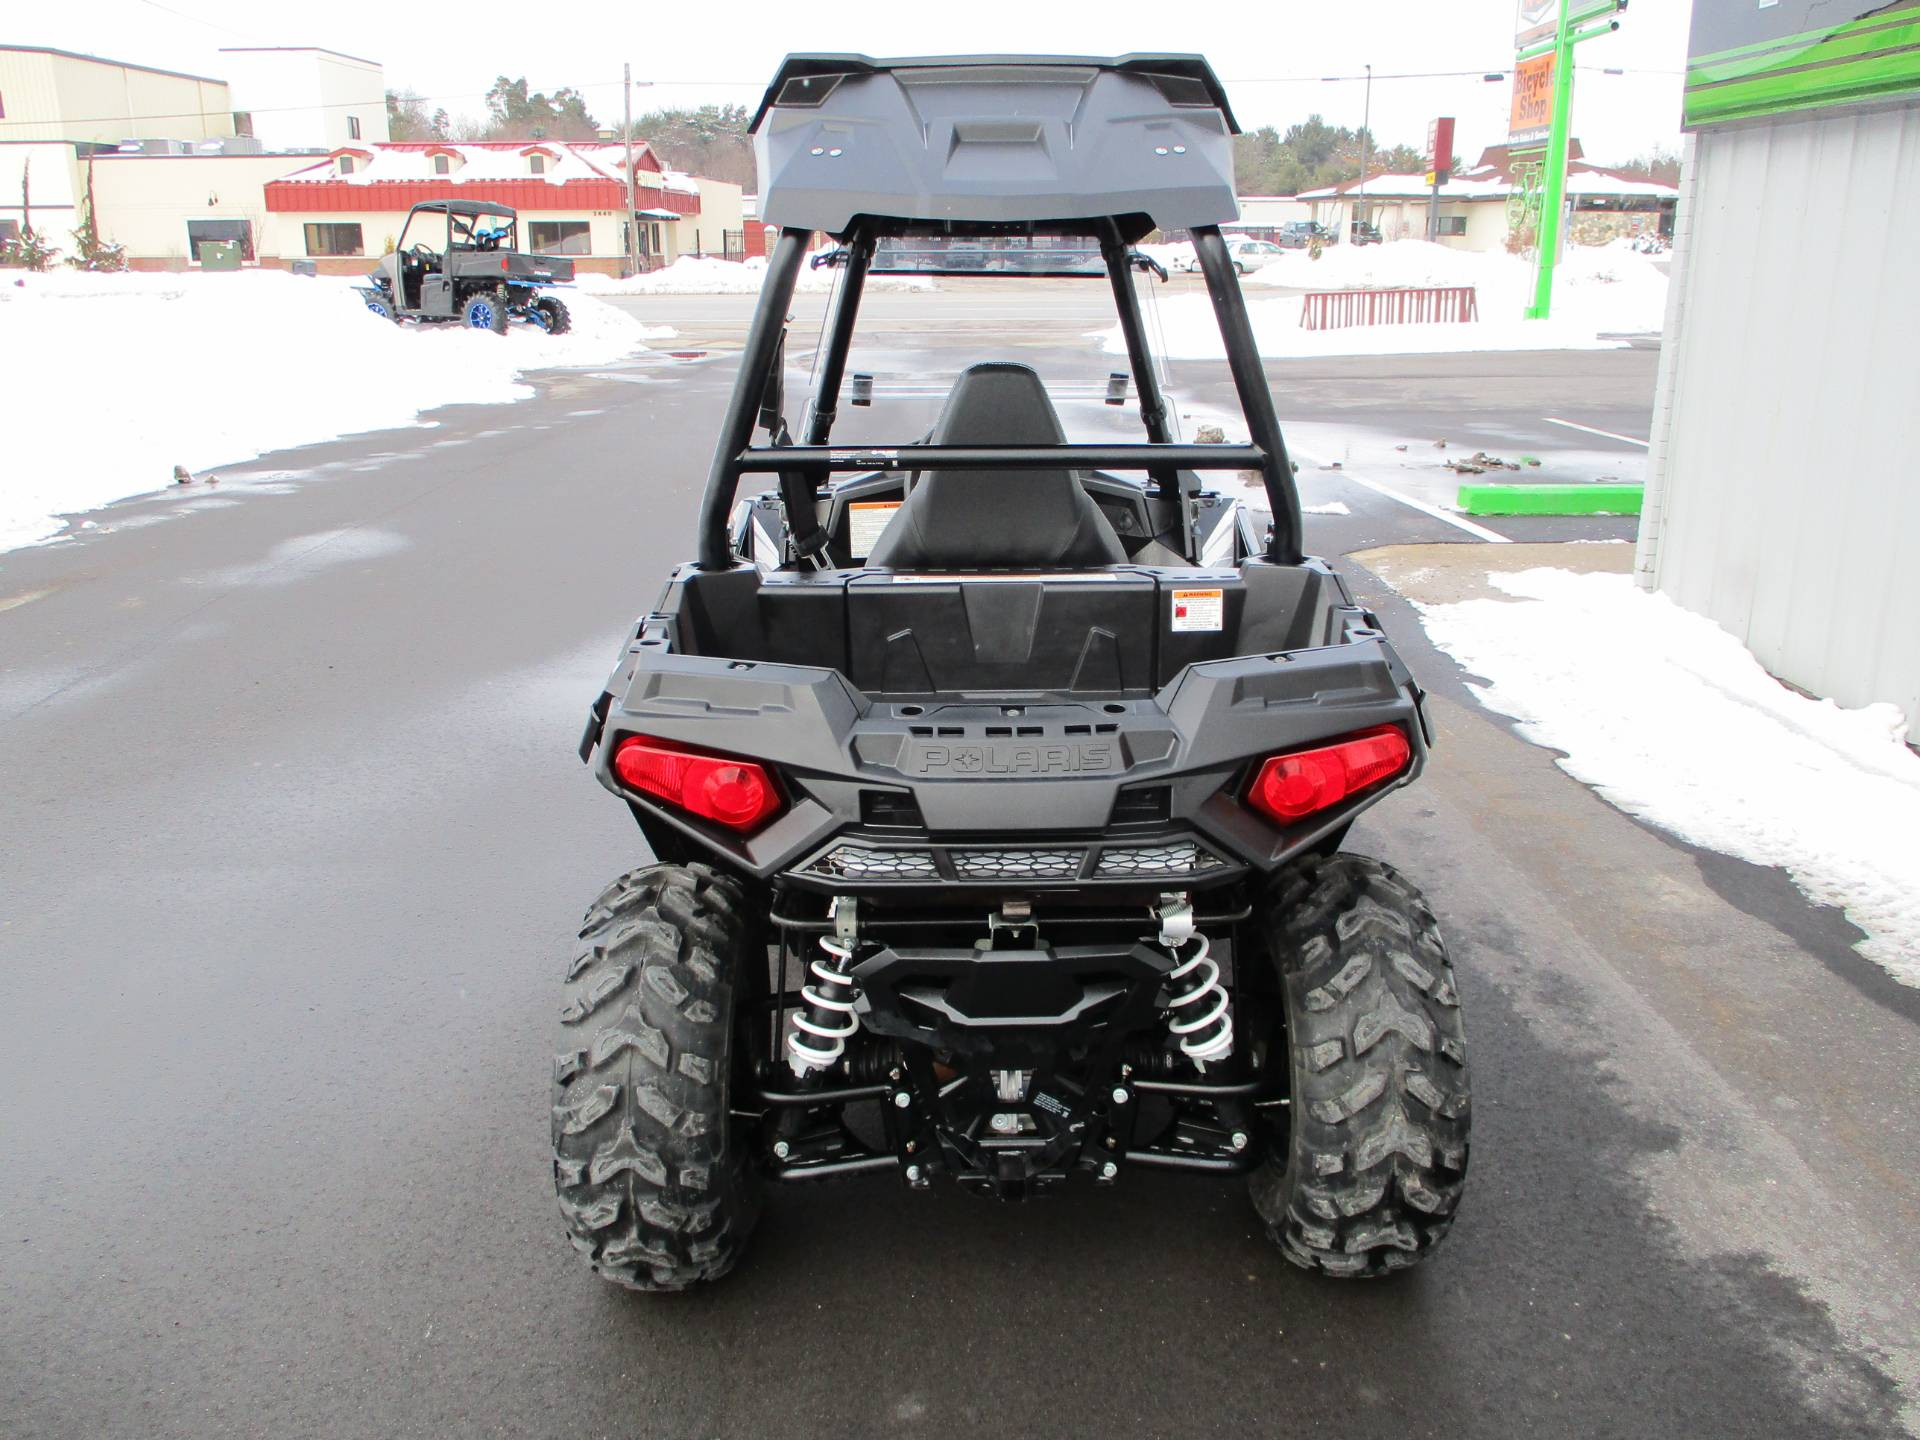 2016 Polaris ACE 900 SP in Howell, Michigan - Photo 12